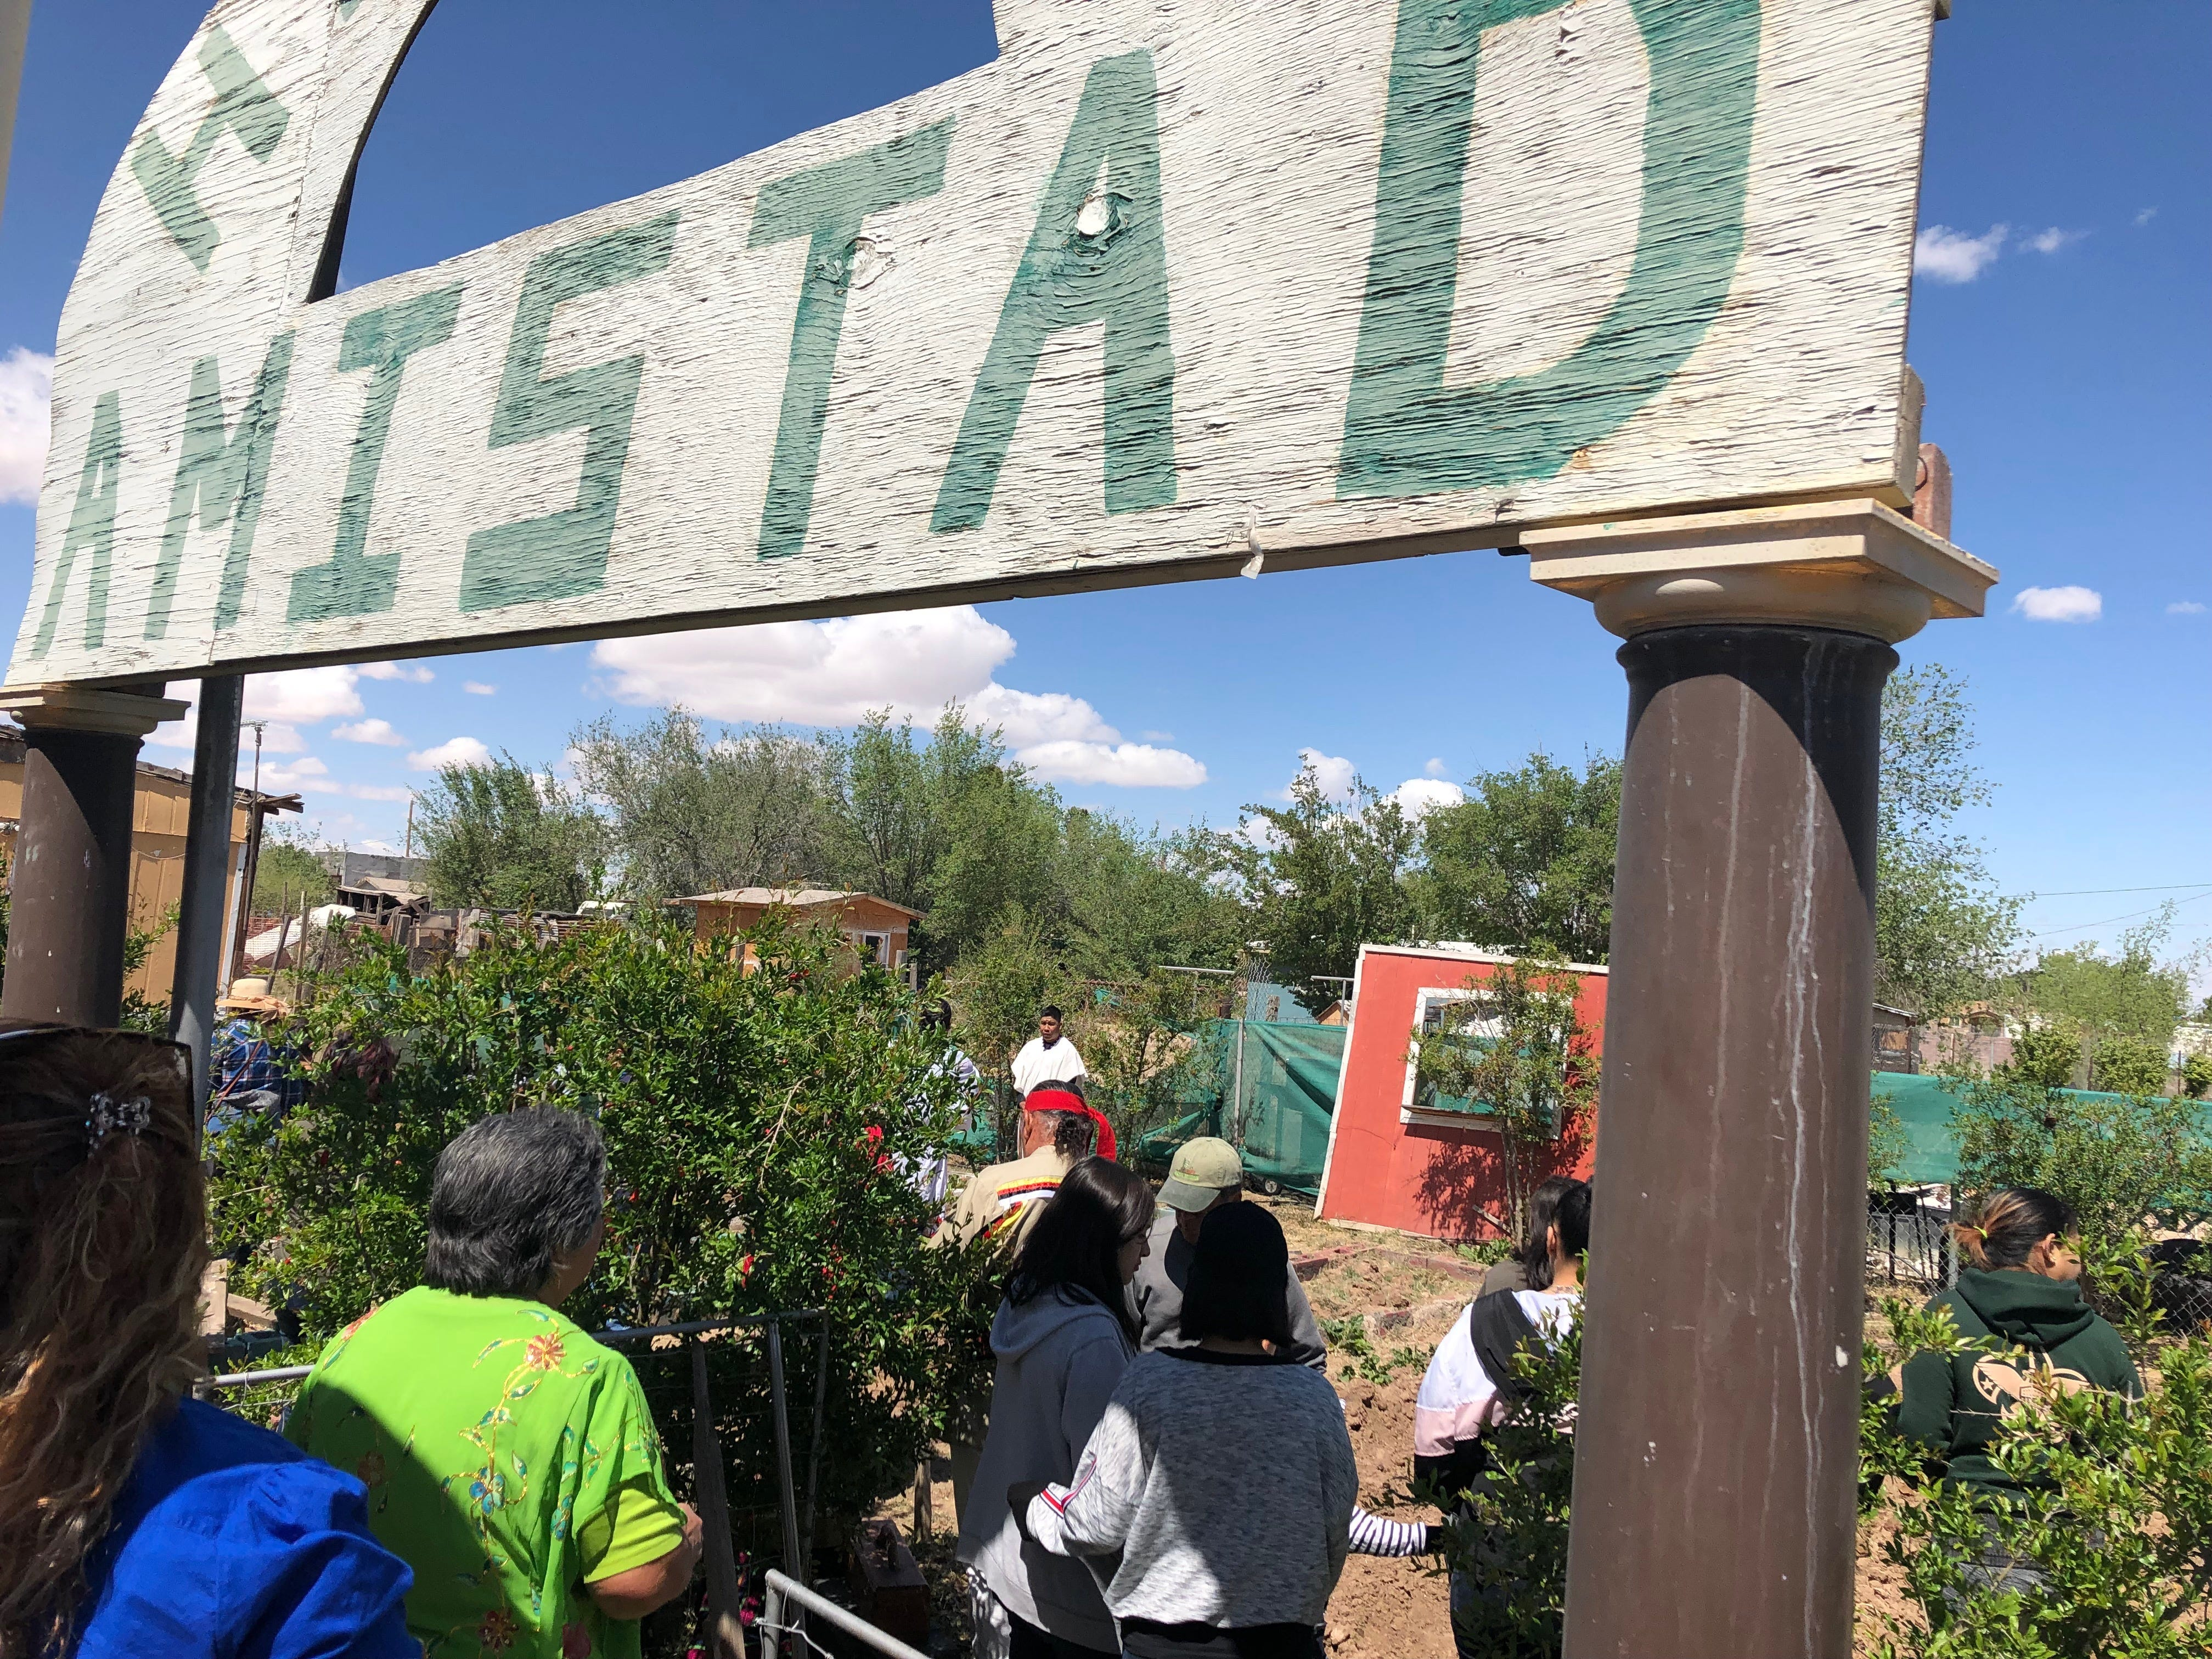 Community members in San Elizario celebrate the start of the growing season at a gathering Saturday, April 13, 2019, at Ayuda Inc.